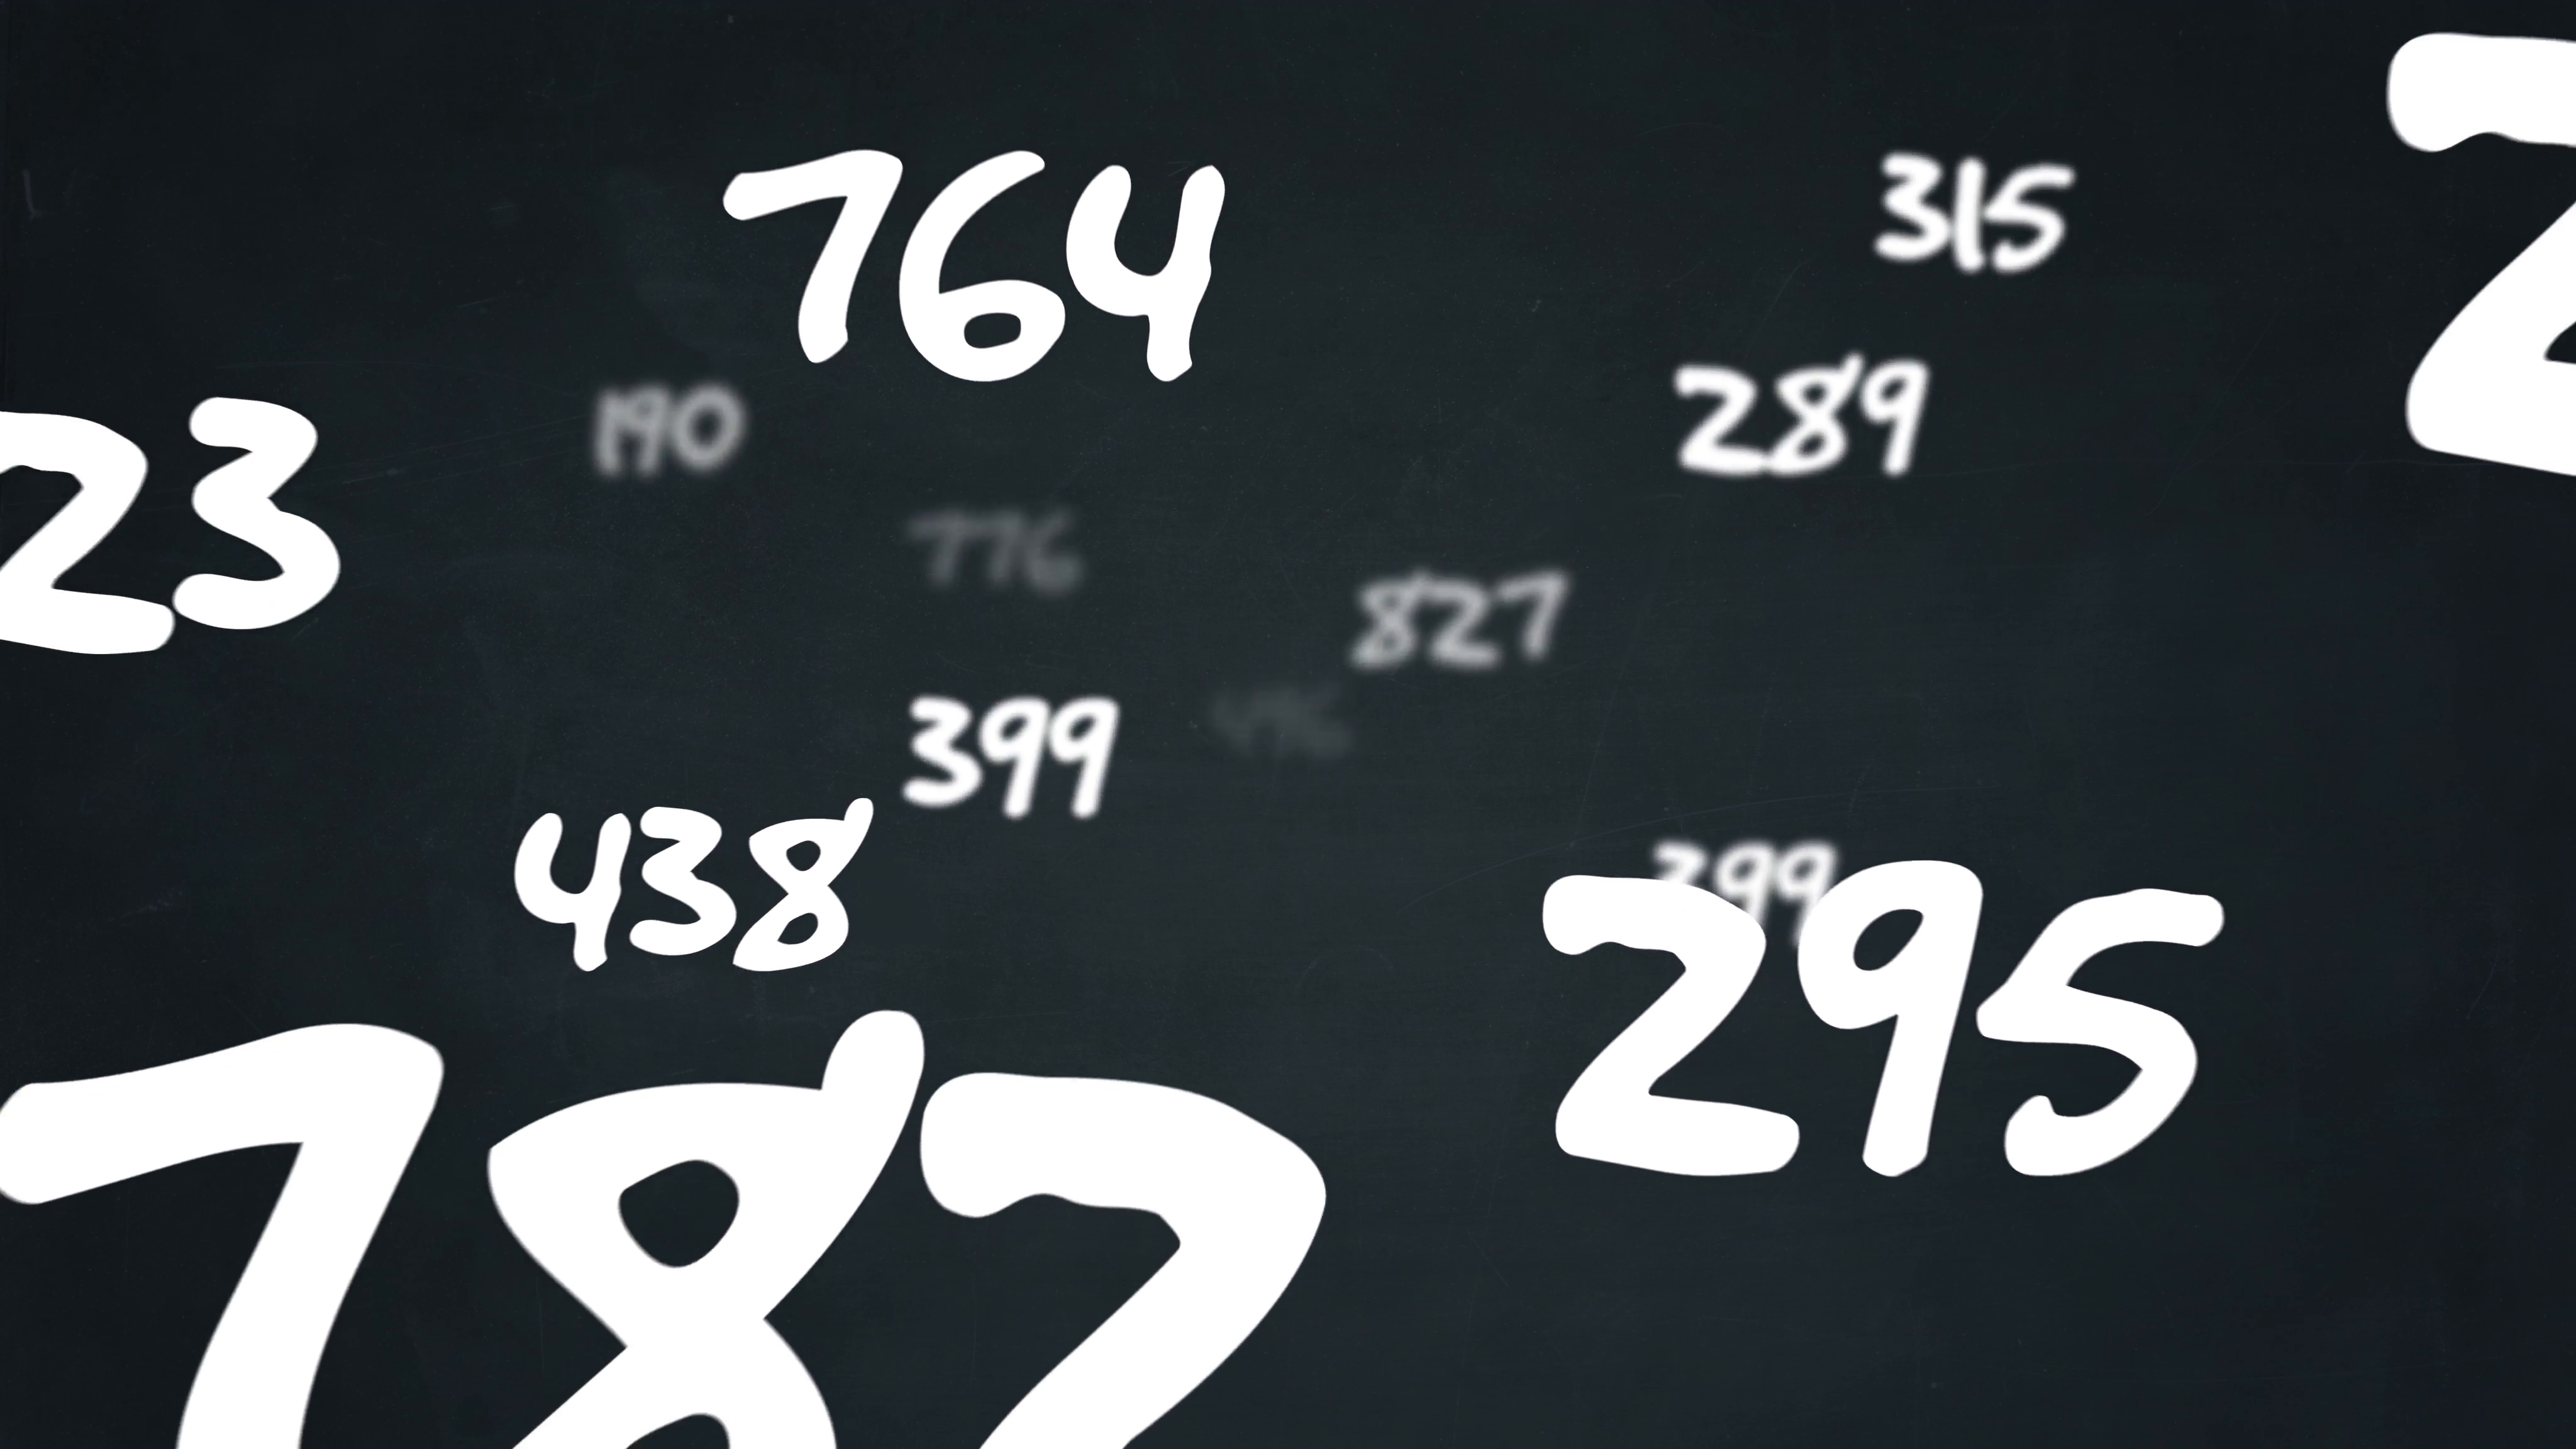 Various random numbers floating by on a chalkboard background ...